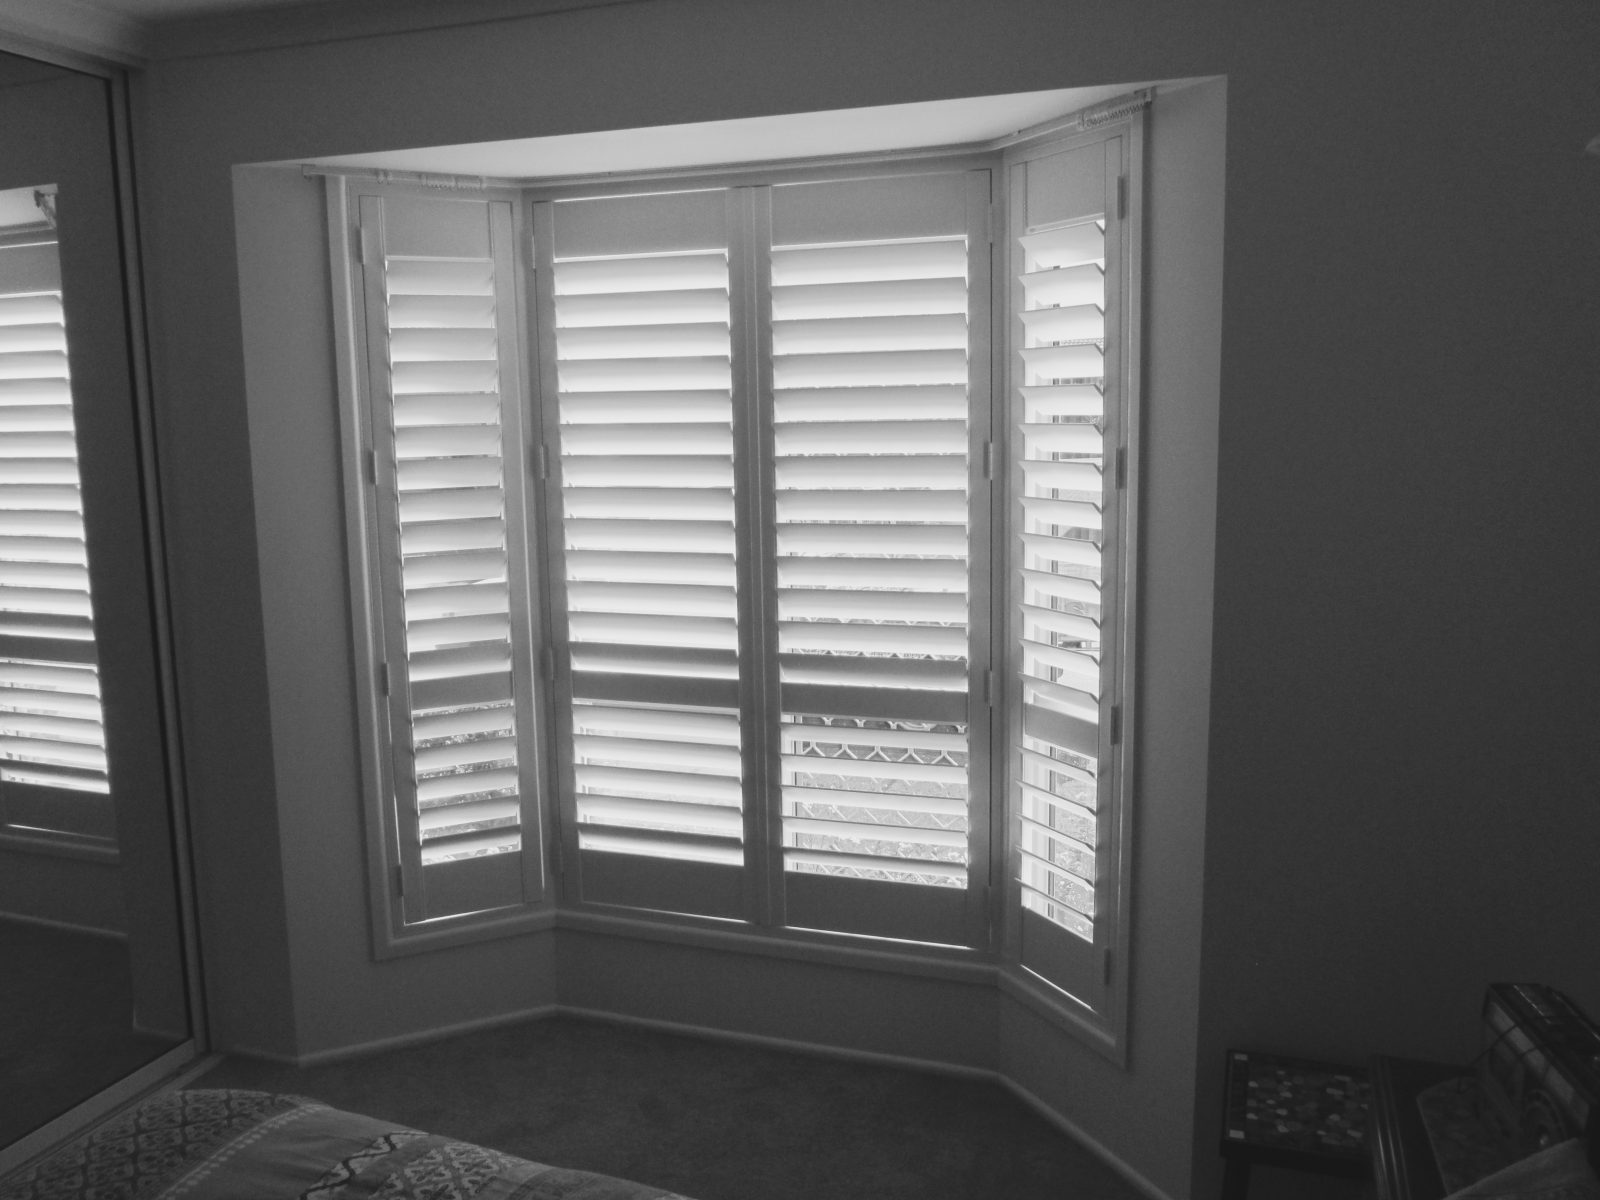 indoor wood composite with window interior shutters for blackout sizing x decor versus blinds plantation